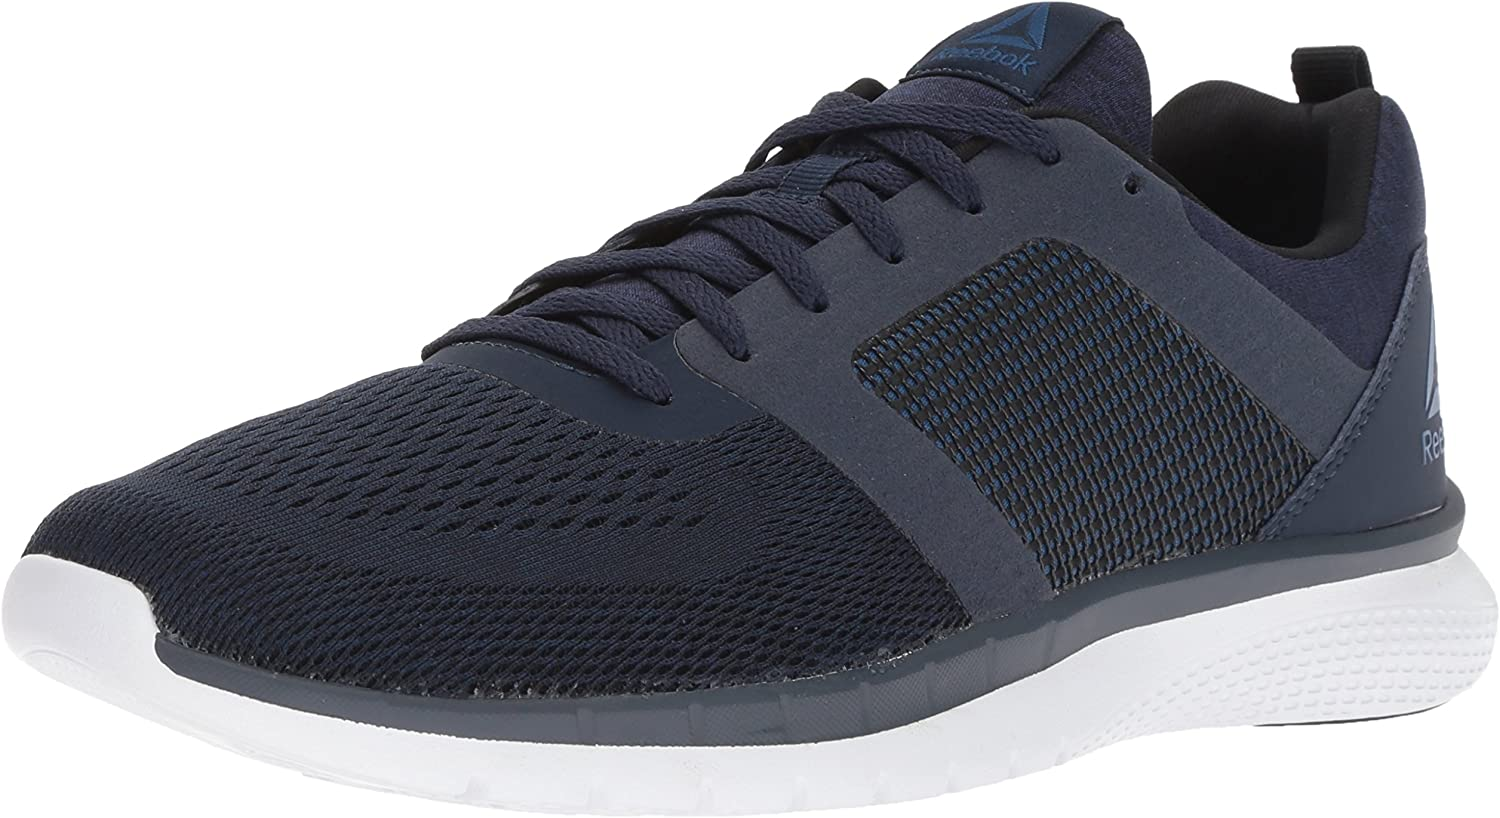 Reebok Men s Pt Prime Run 2.0 Shoe